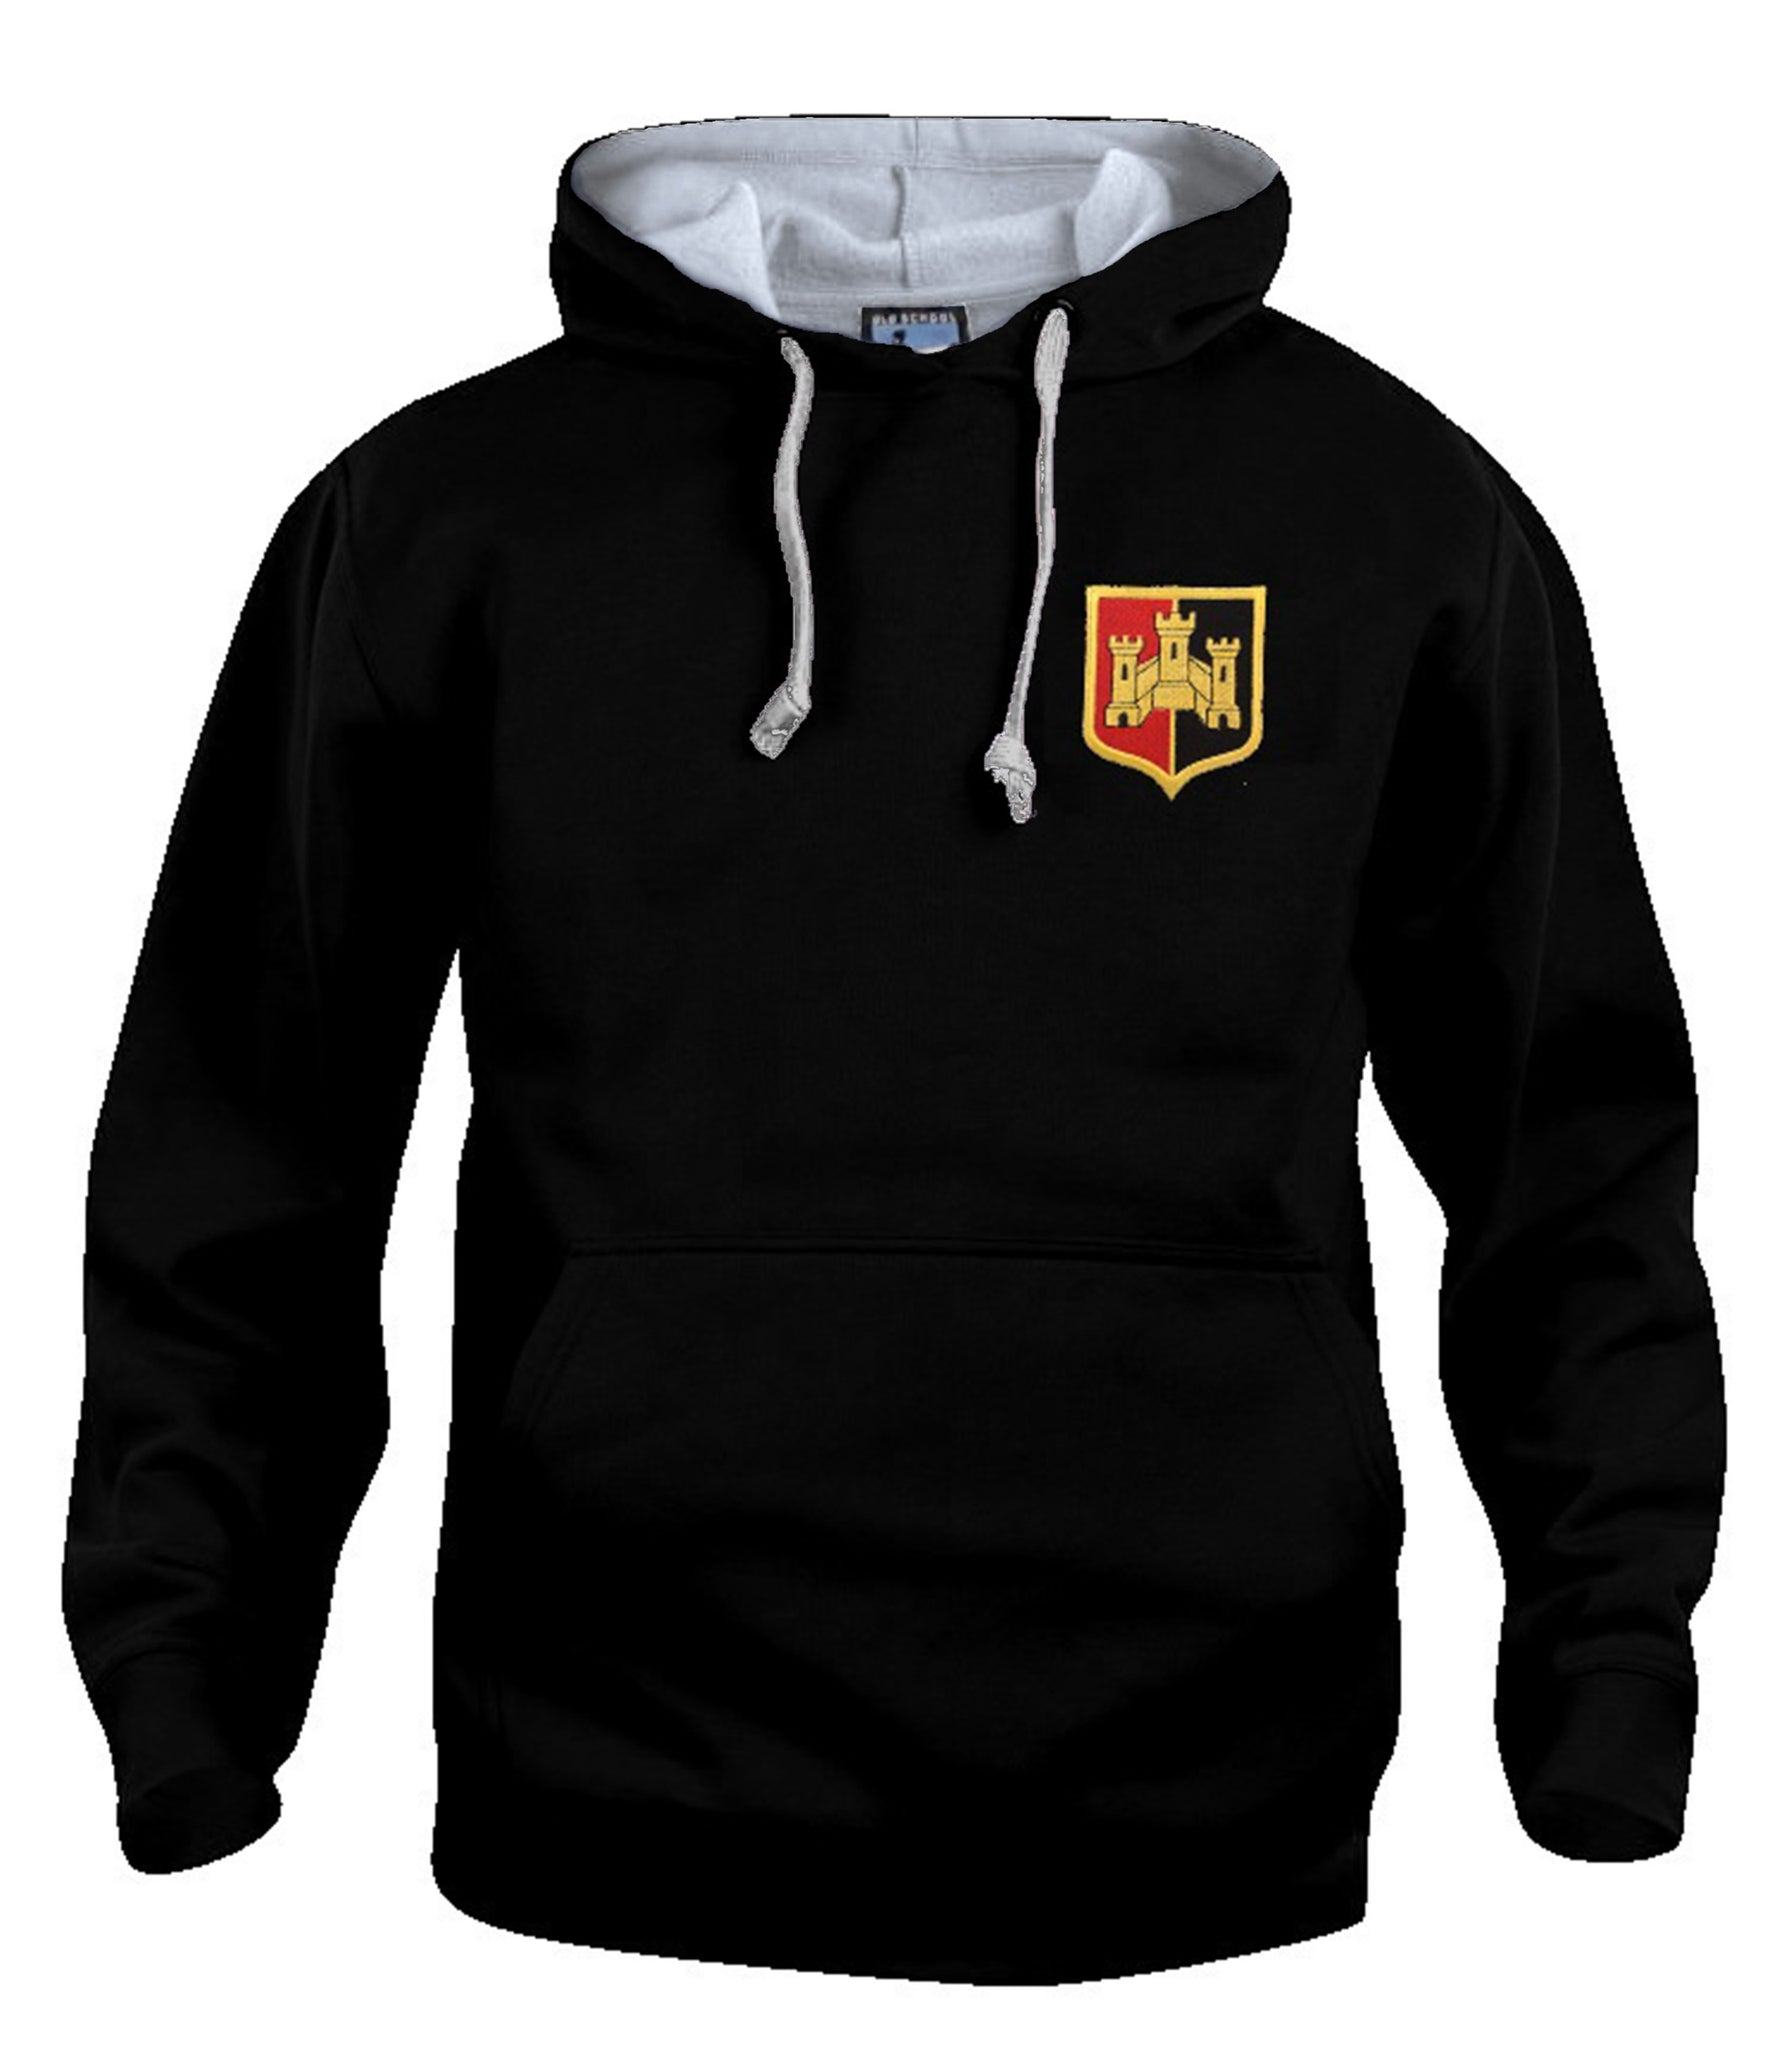 Exeter City 1950's Hoodie - Old School Football